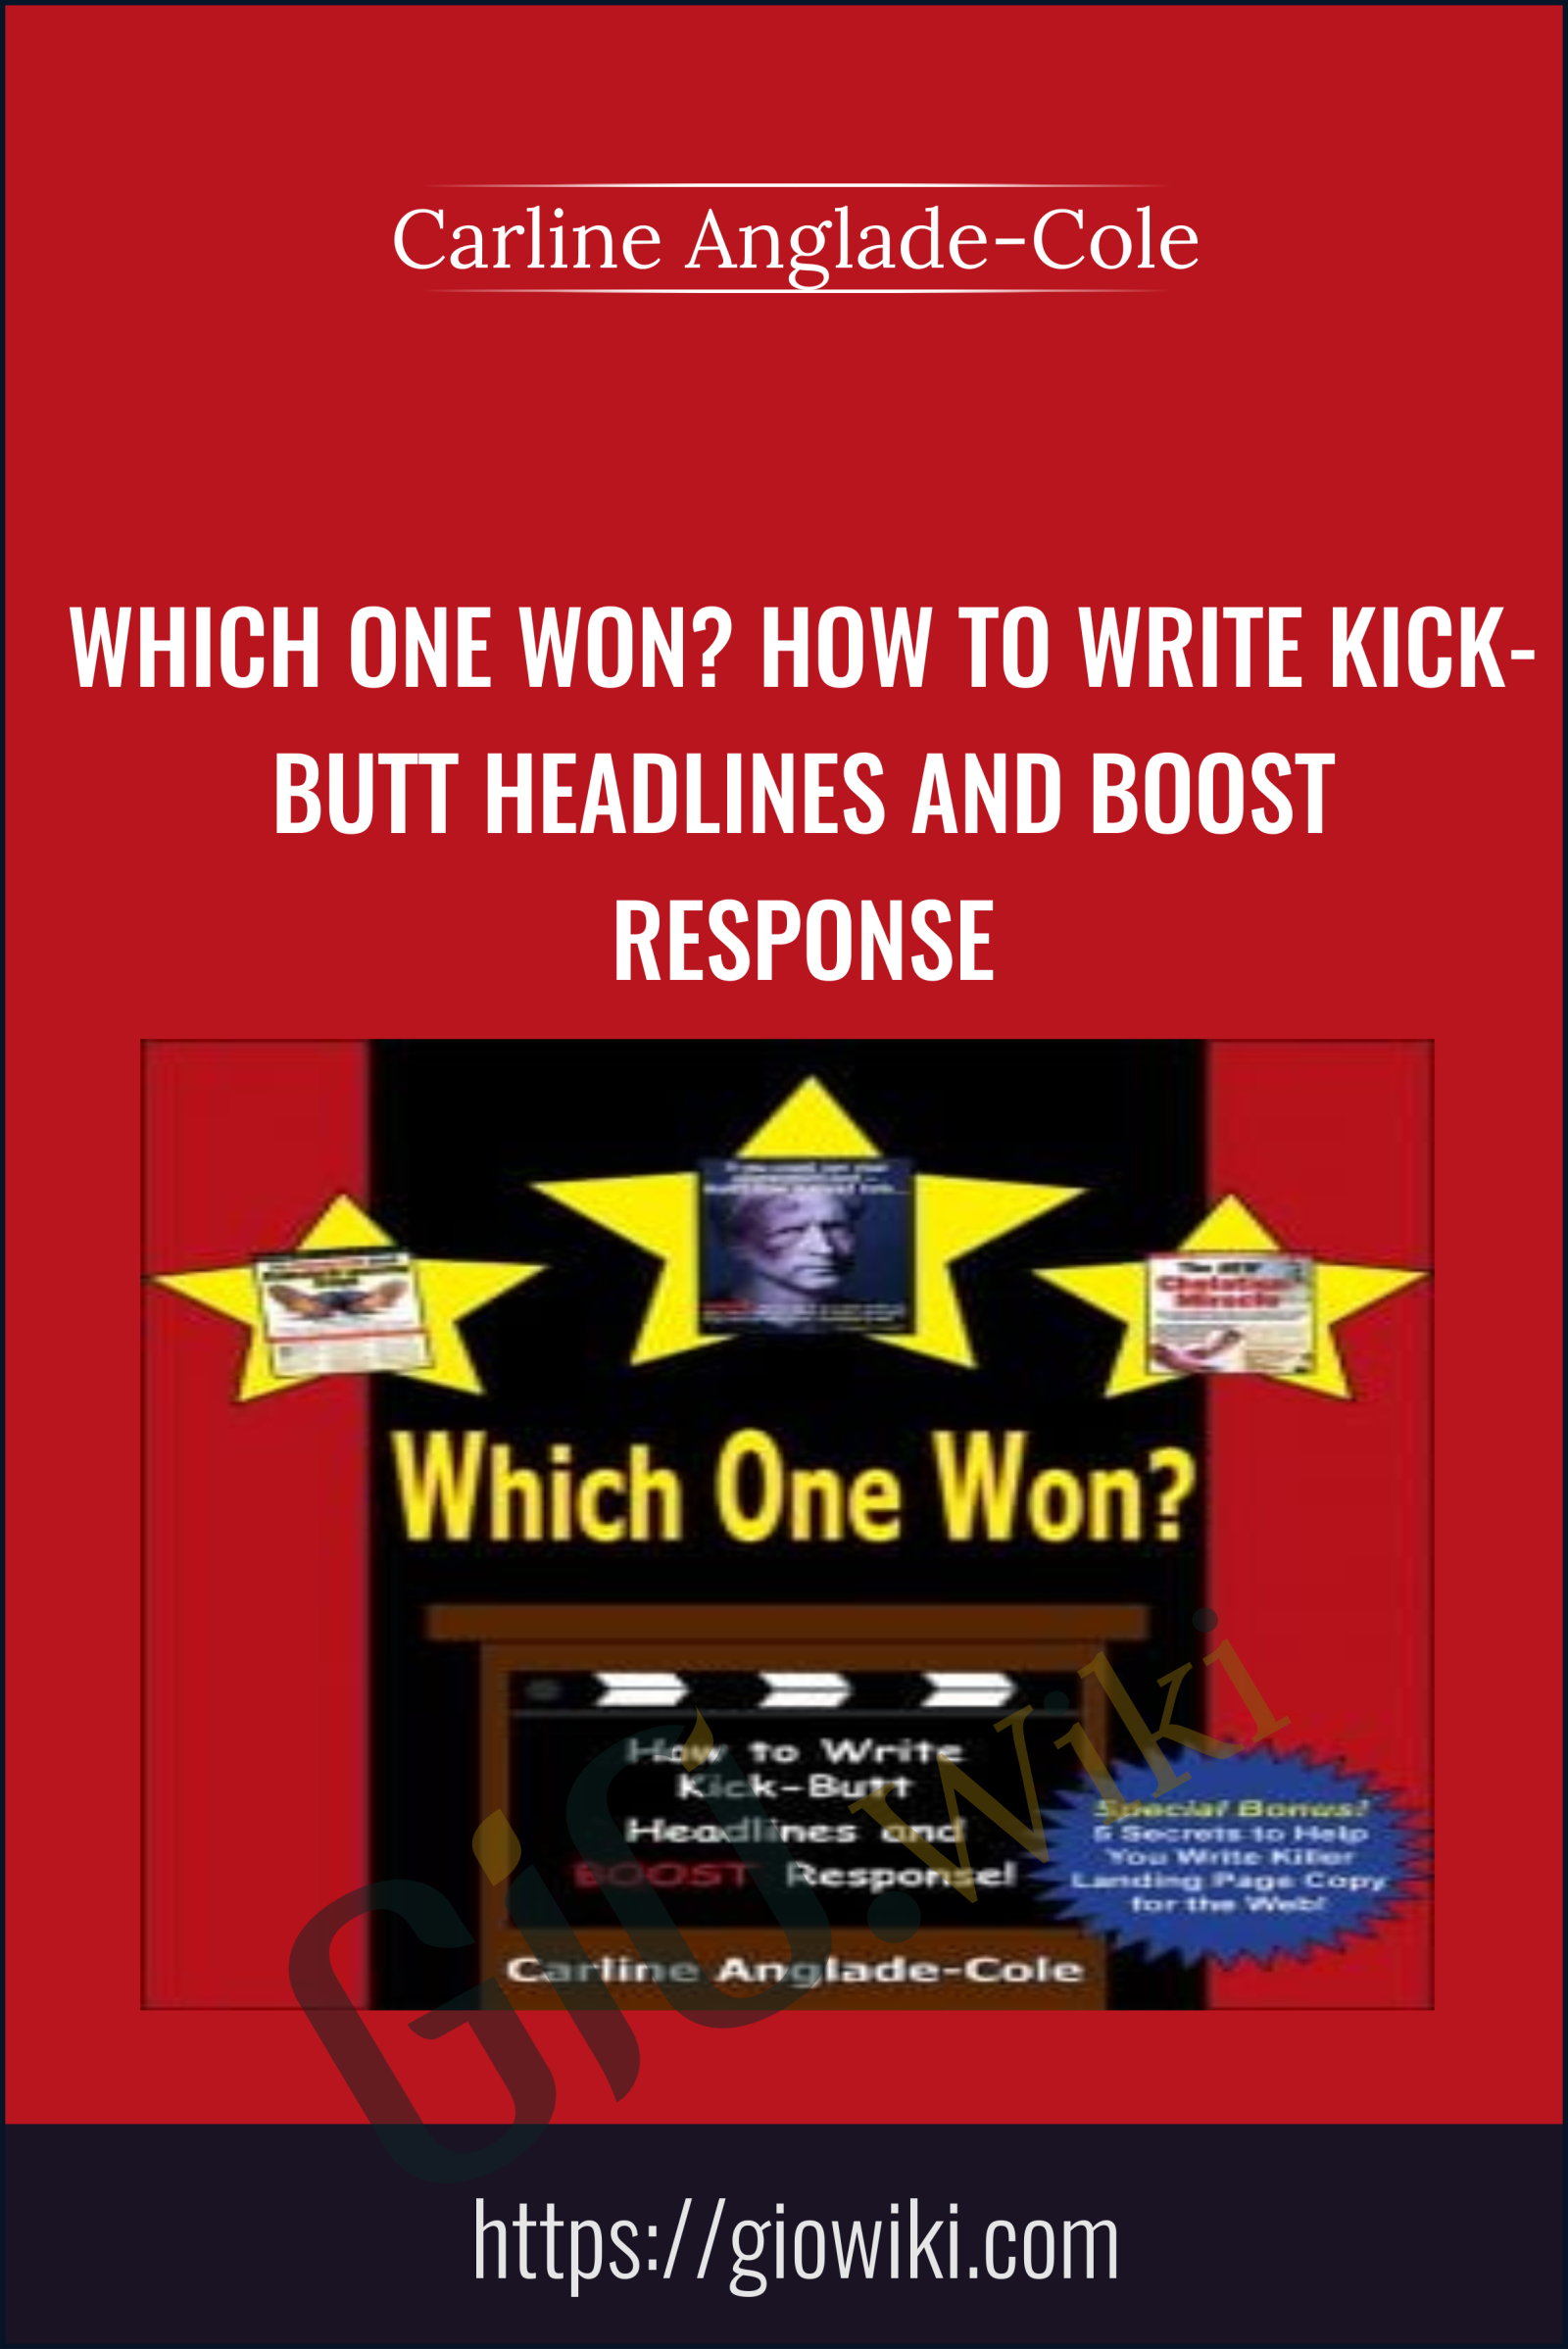 Which One Won? How to Write Kick-Butt Headlines and Boost Response - Carline Anglade-Cole